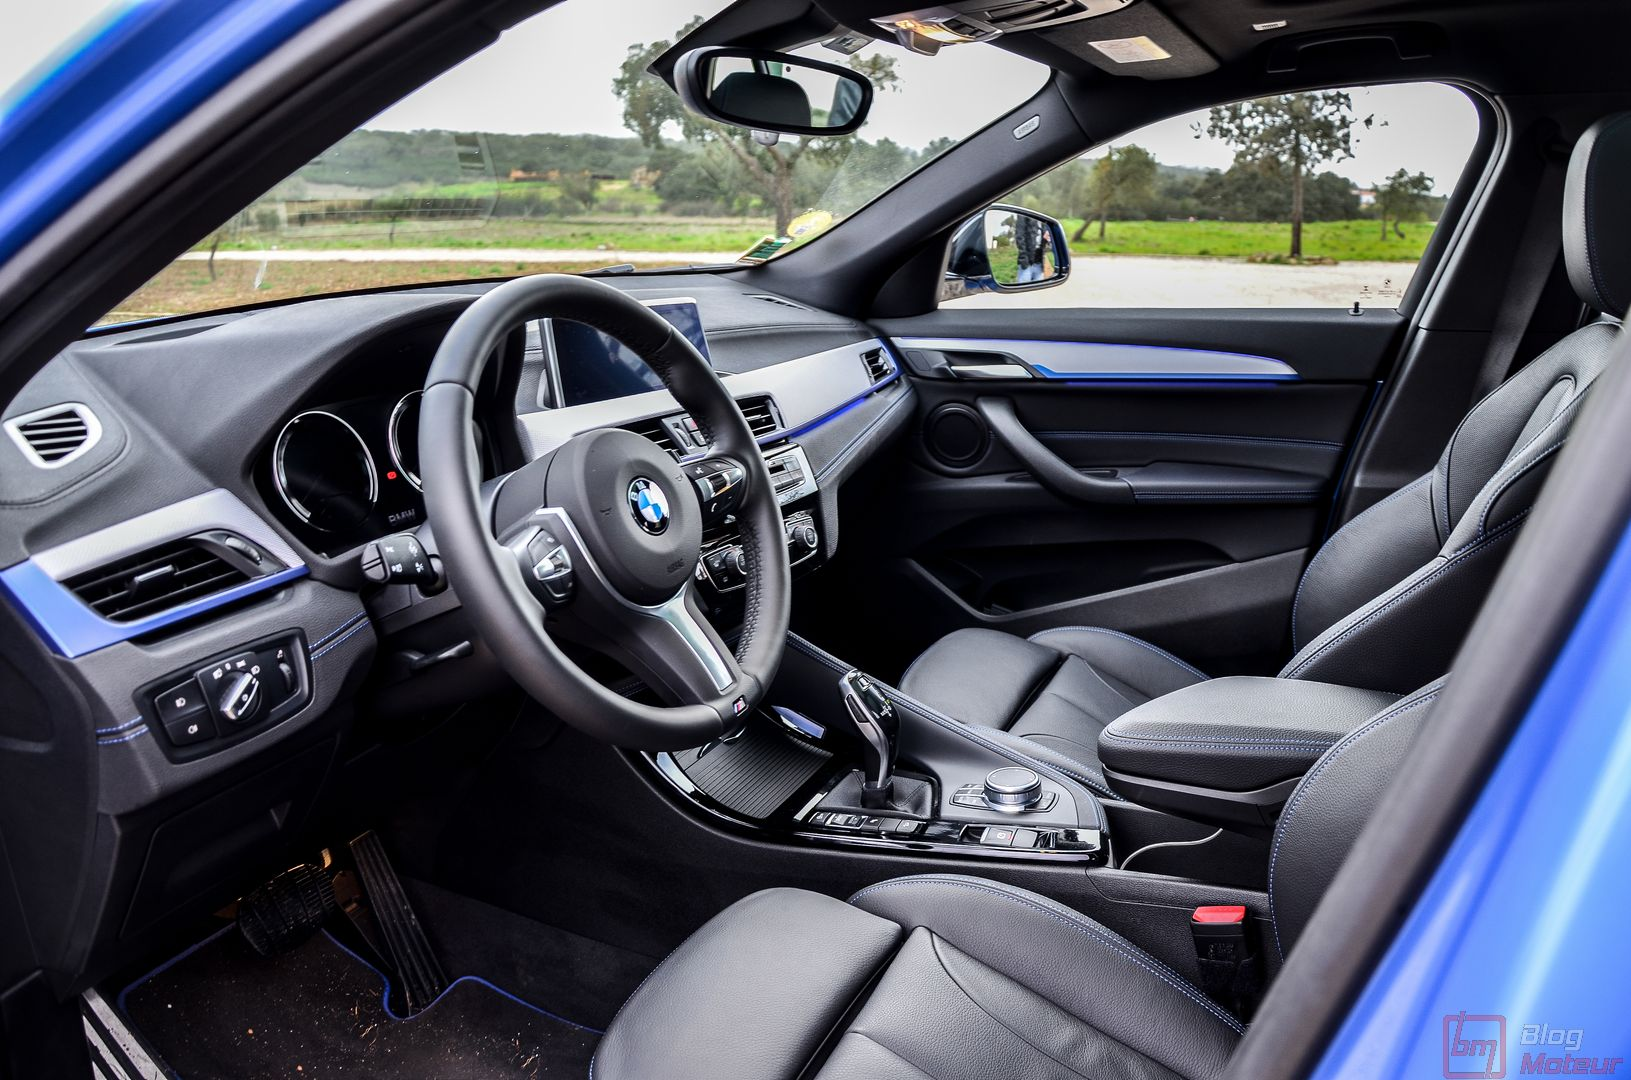 essai bmw x2 l 39 audace selon bmw en m sport x. Black Bedroom Furniture Sets. Home Design Ideas